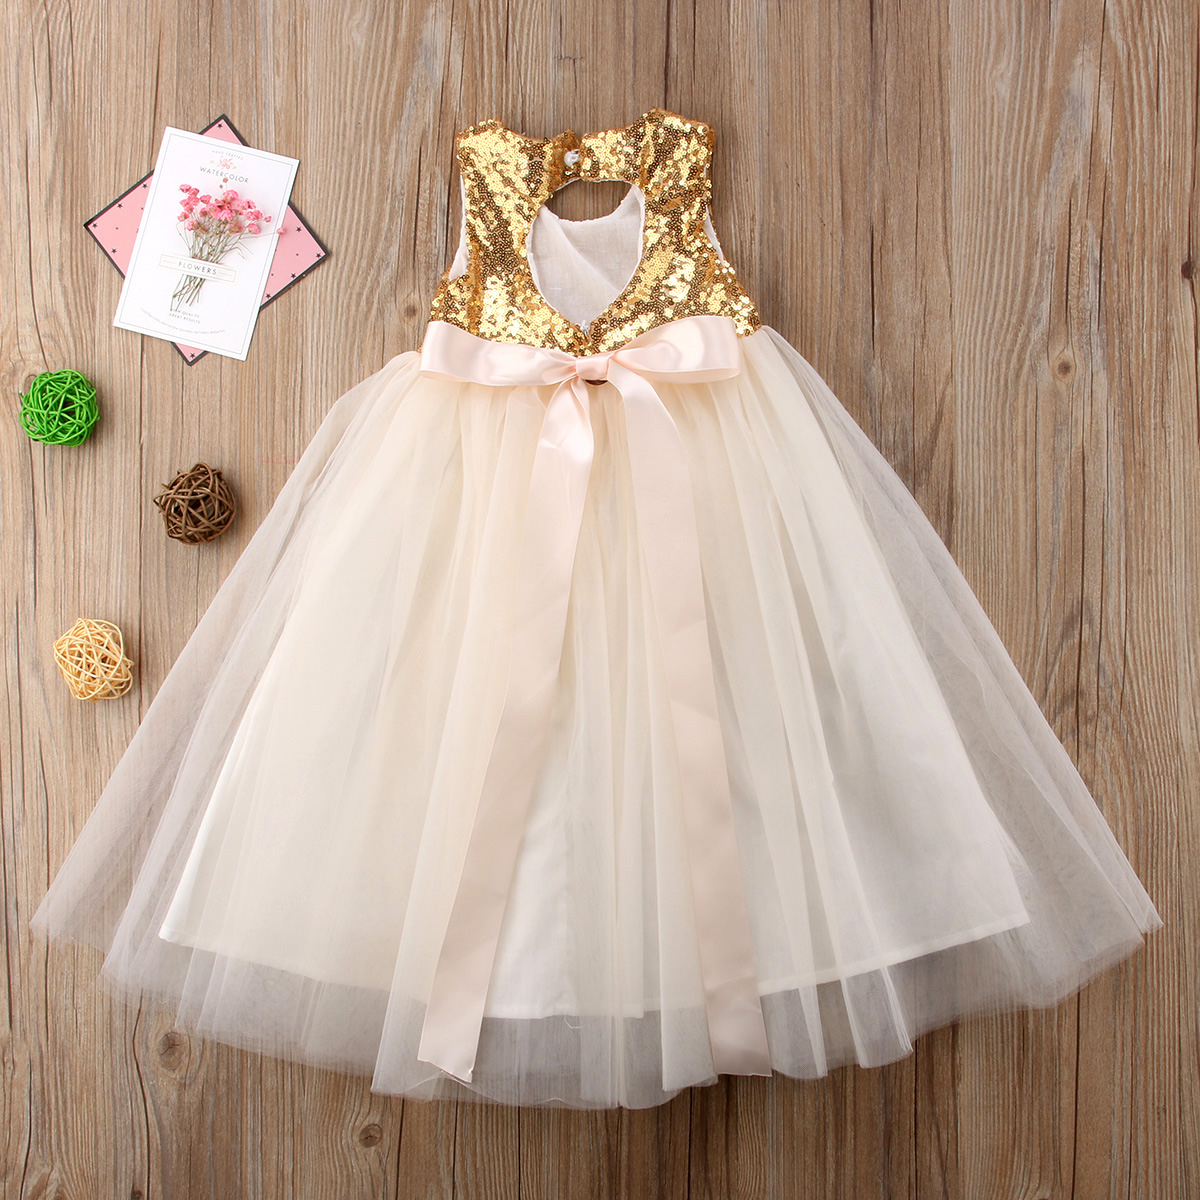 New   Flower     Girl     Dress   Sleeveless Long Maxi   Dress   Lace Tulle Party   Dress   Gown Formal Occasion   Dresses   2-7T